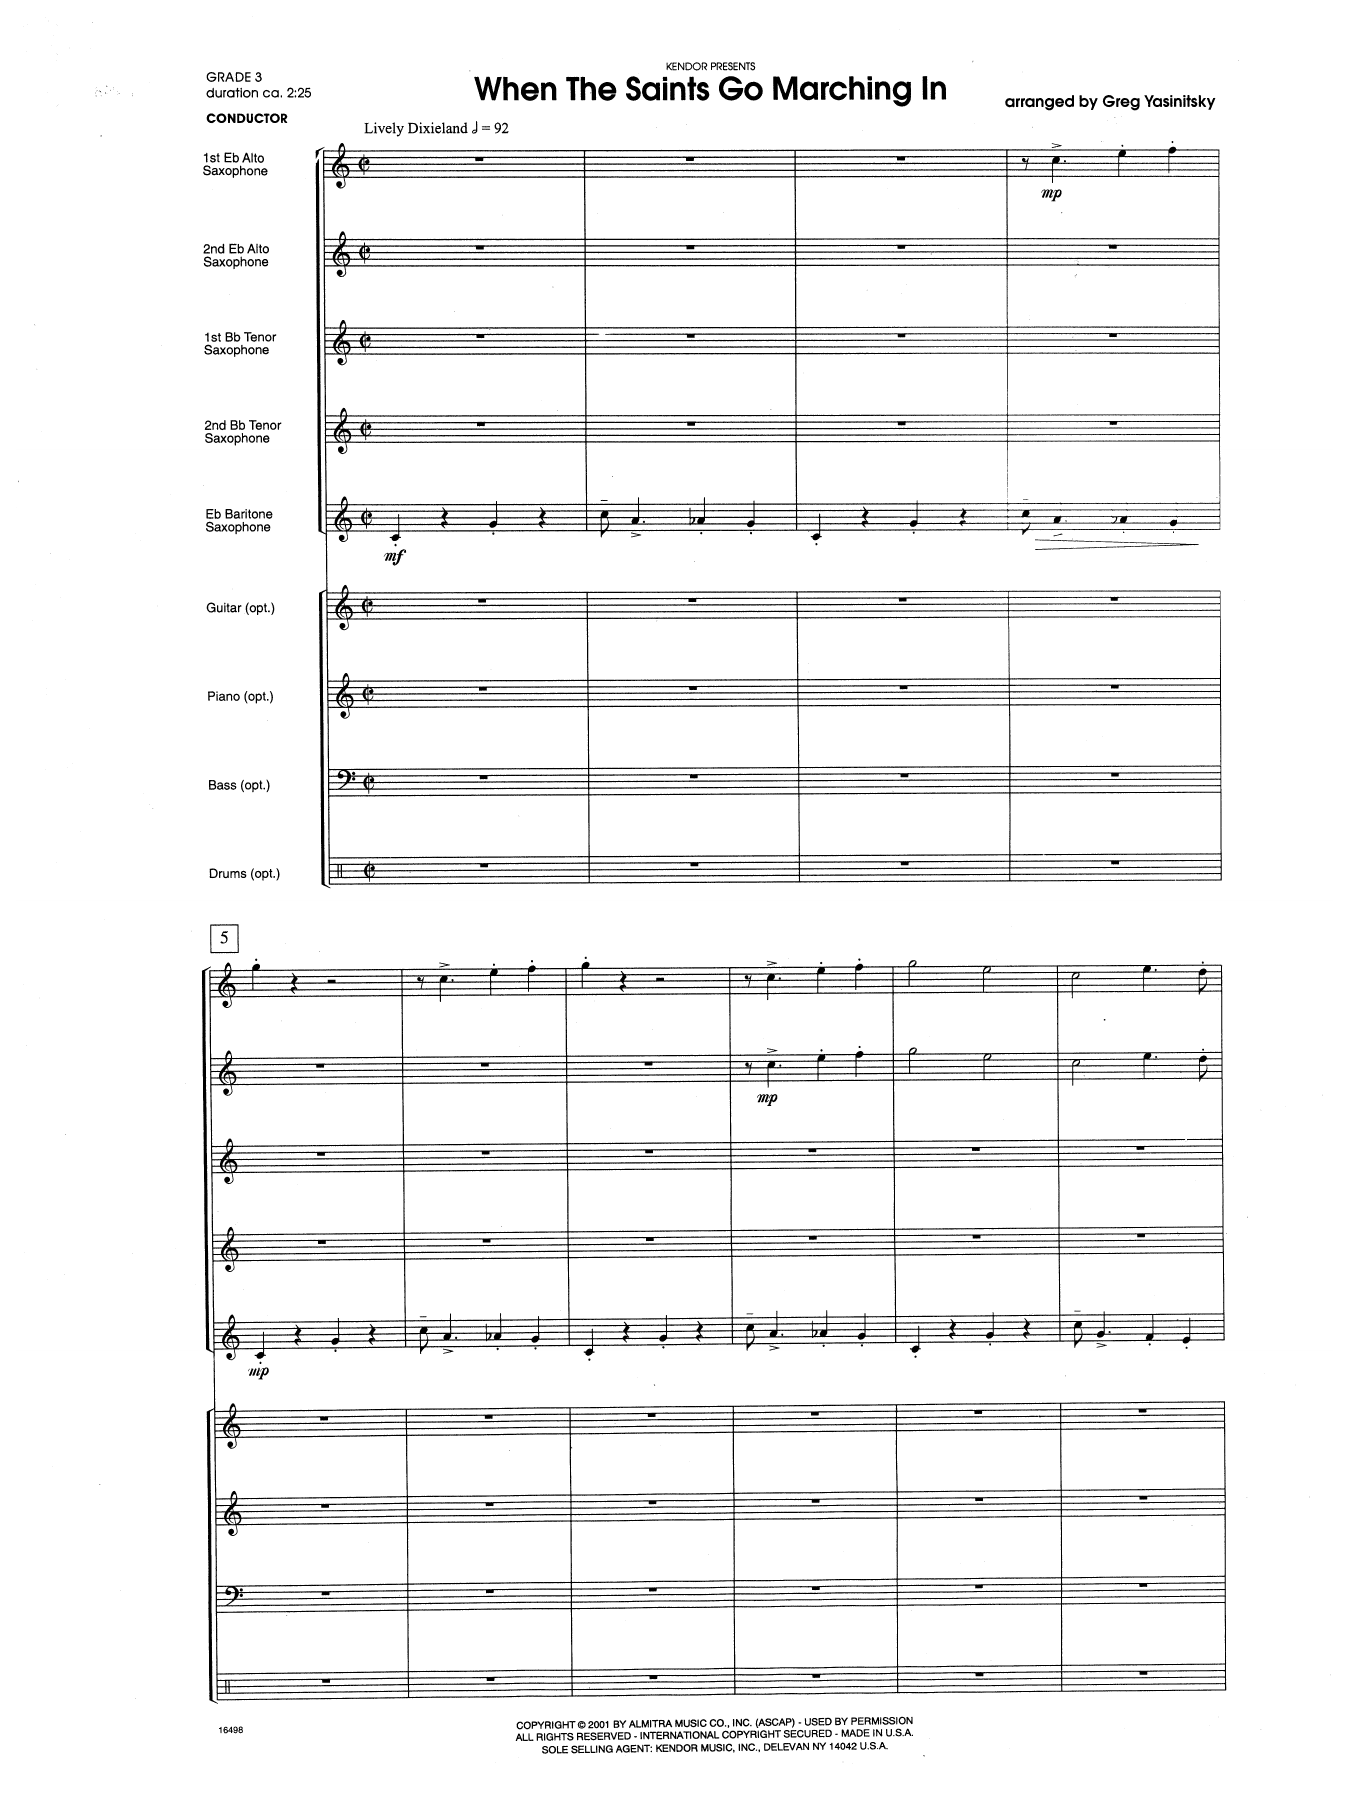 When the Saints Go Marching In (COMPLETE) sheet music for band by Gregory Yasinitsky